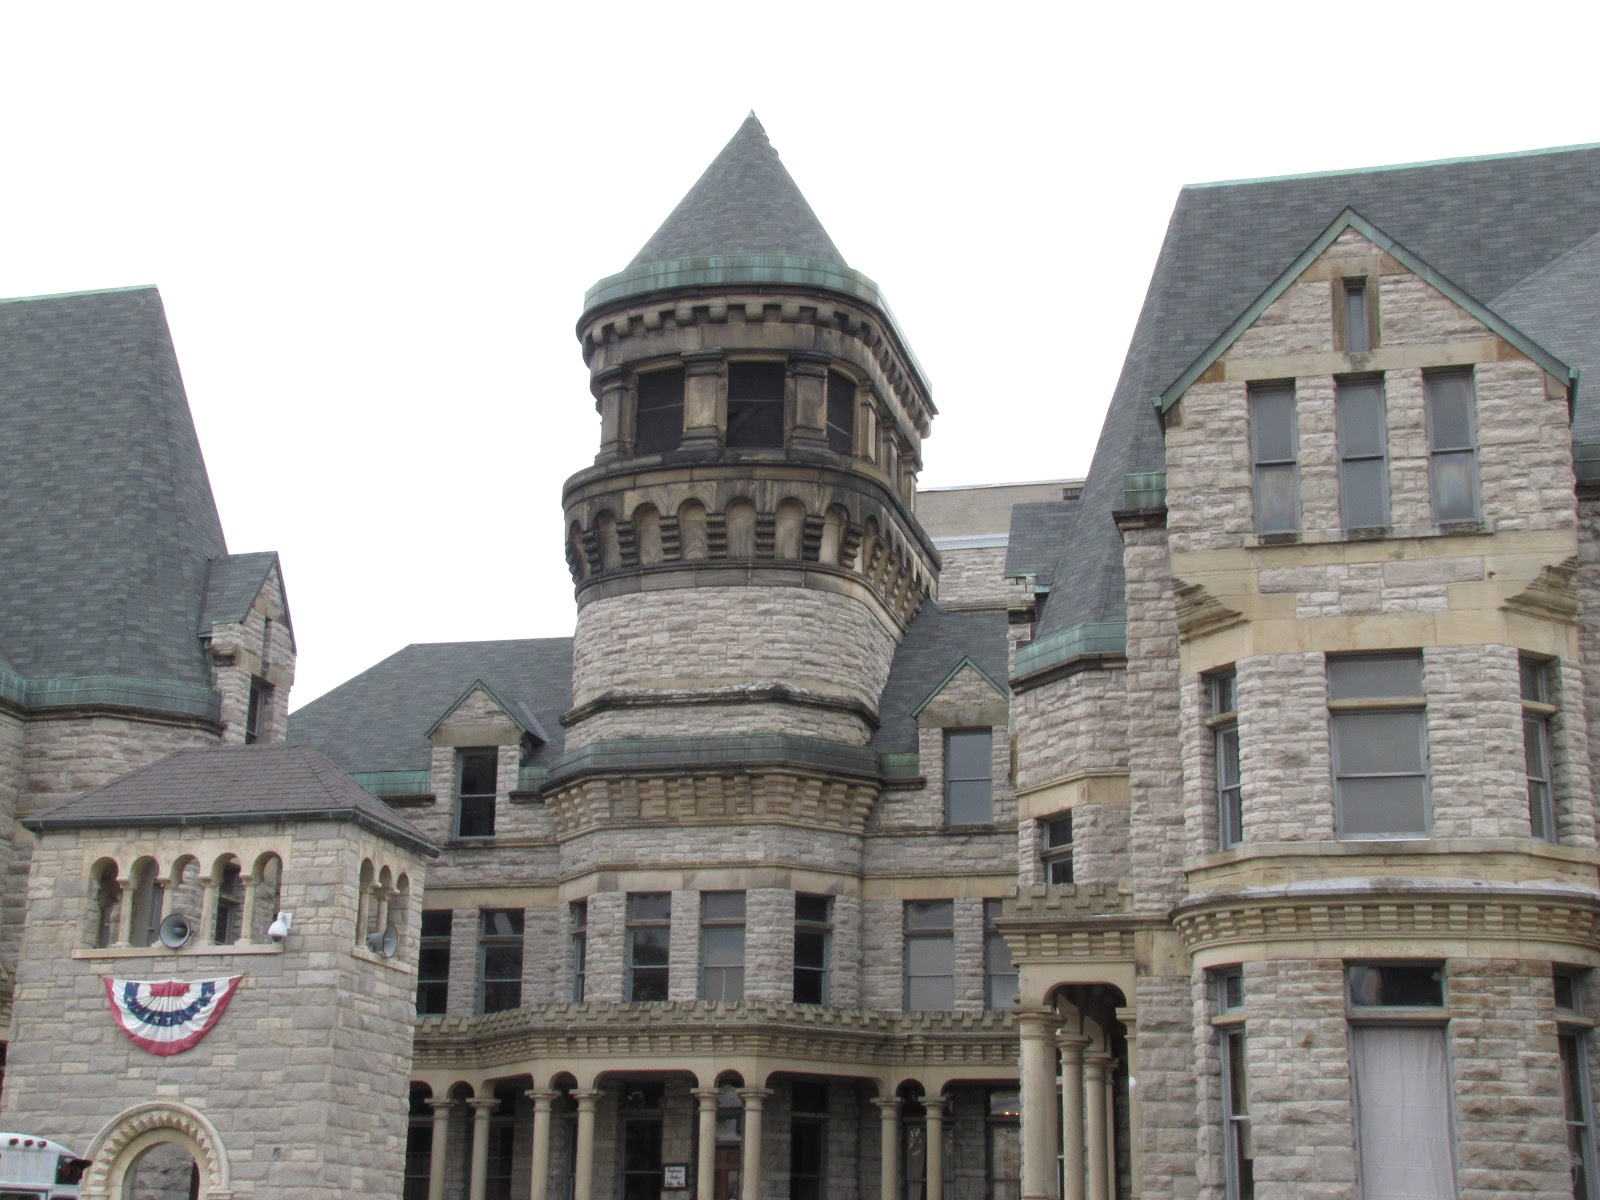 Visiting the haunted ohio state reformatory